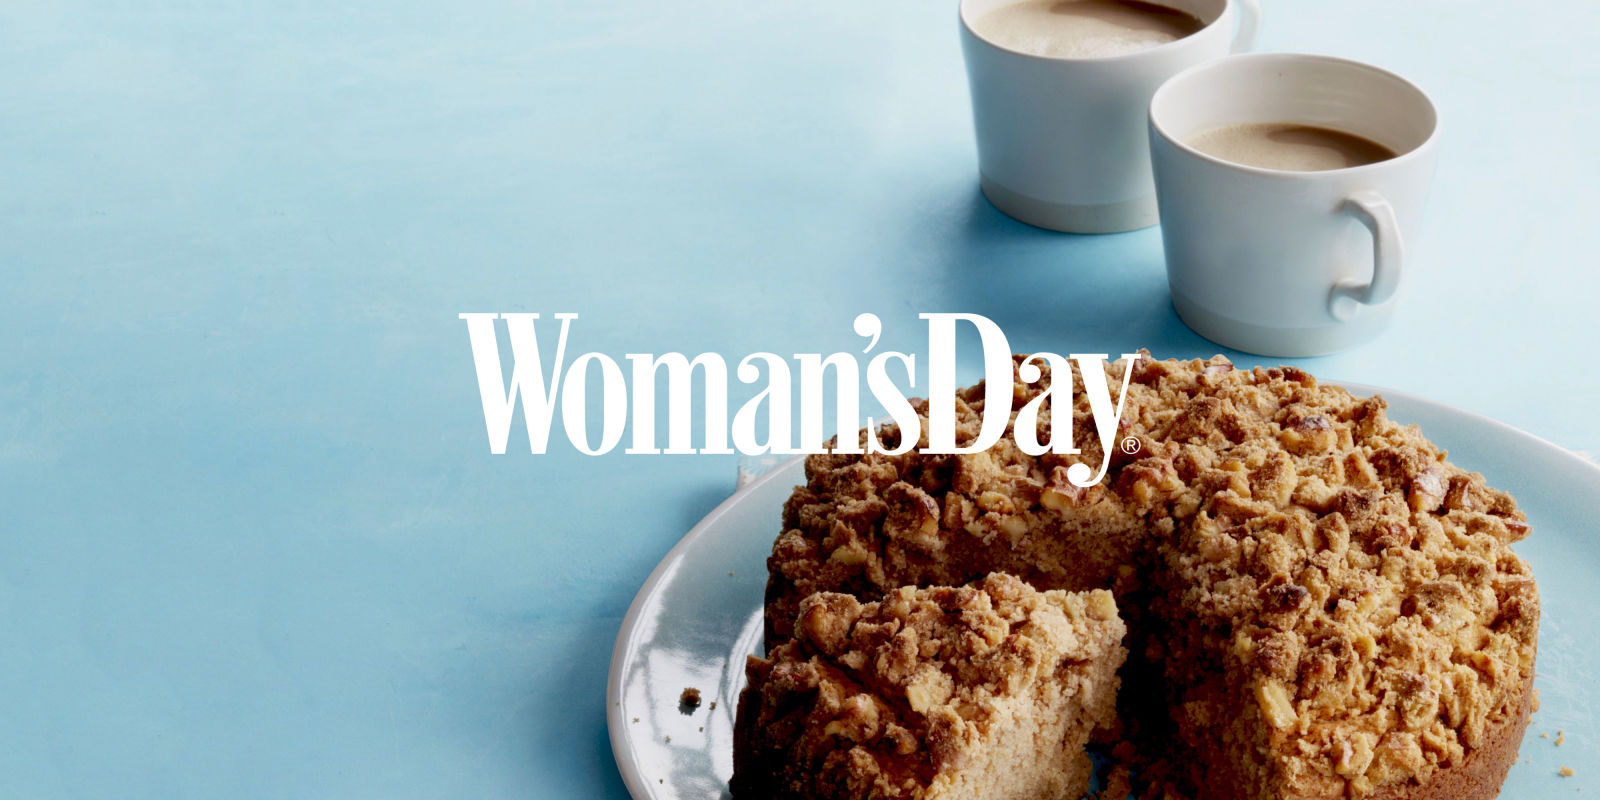 Womans Day Com >> Healthy Recipes And Relationship Advice To Live Well Every Day